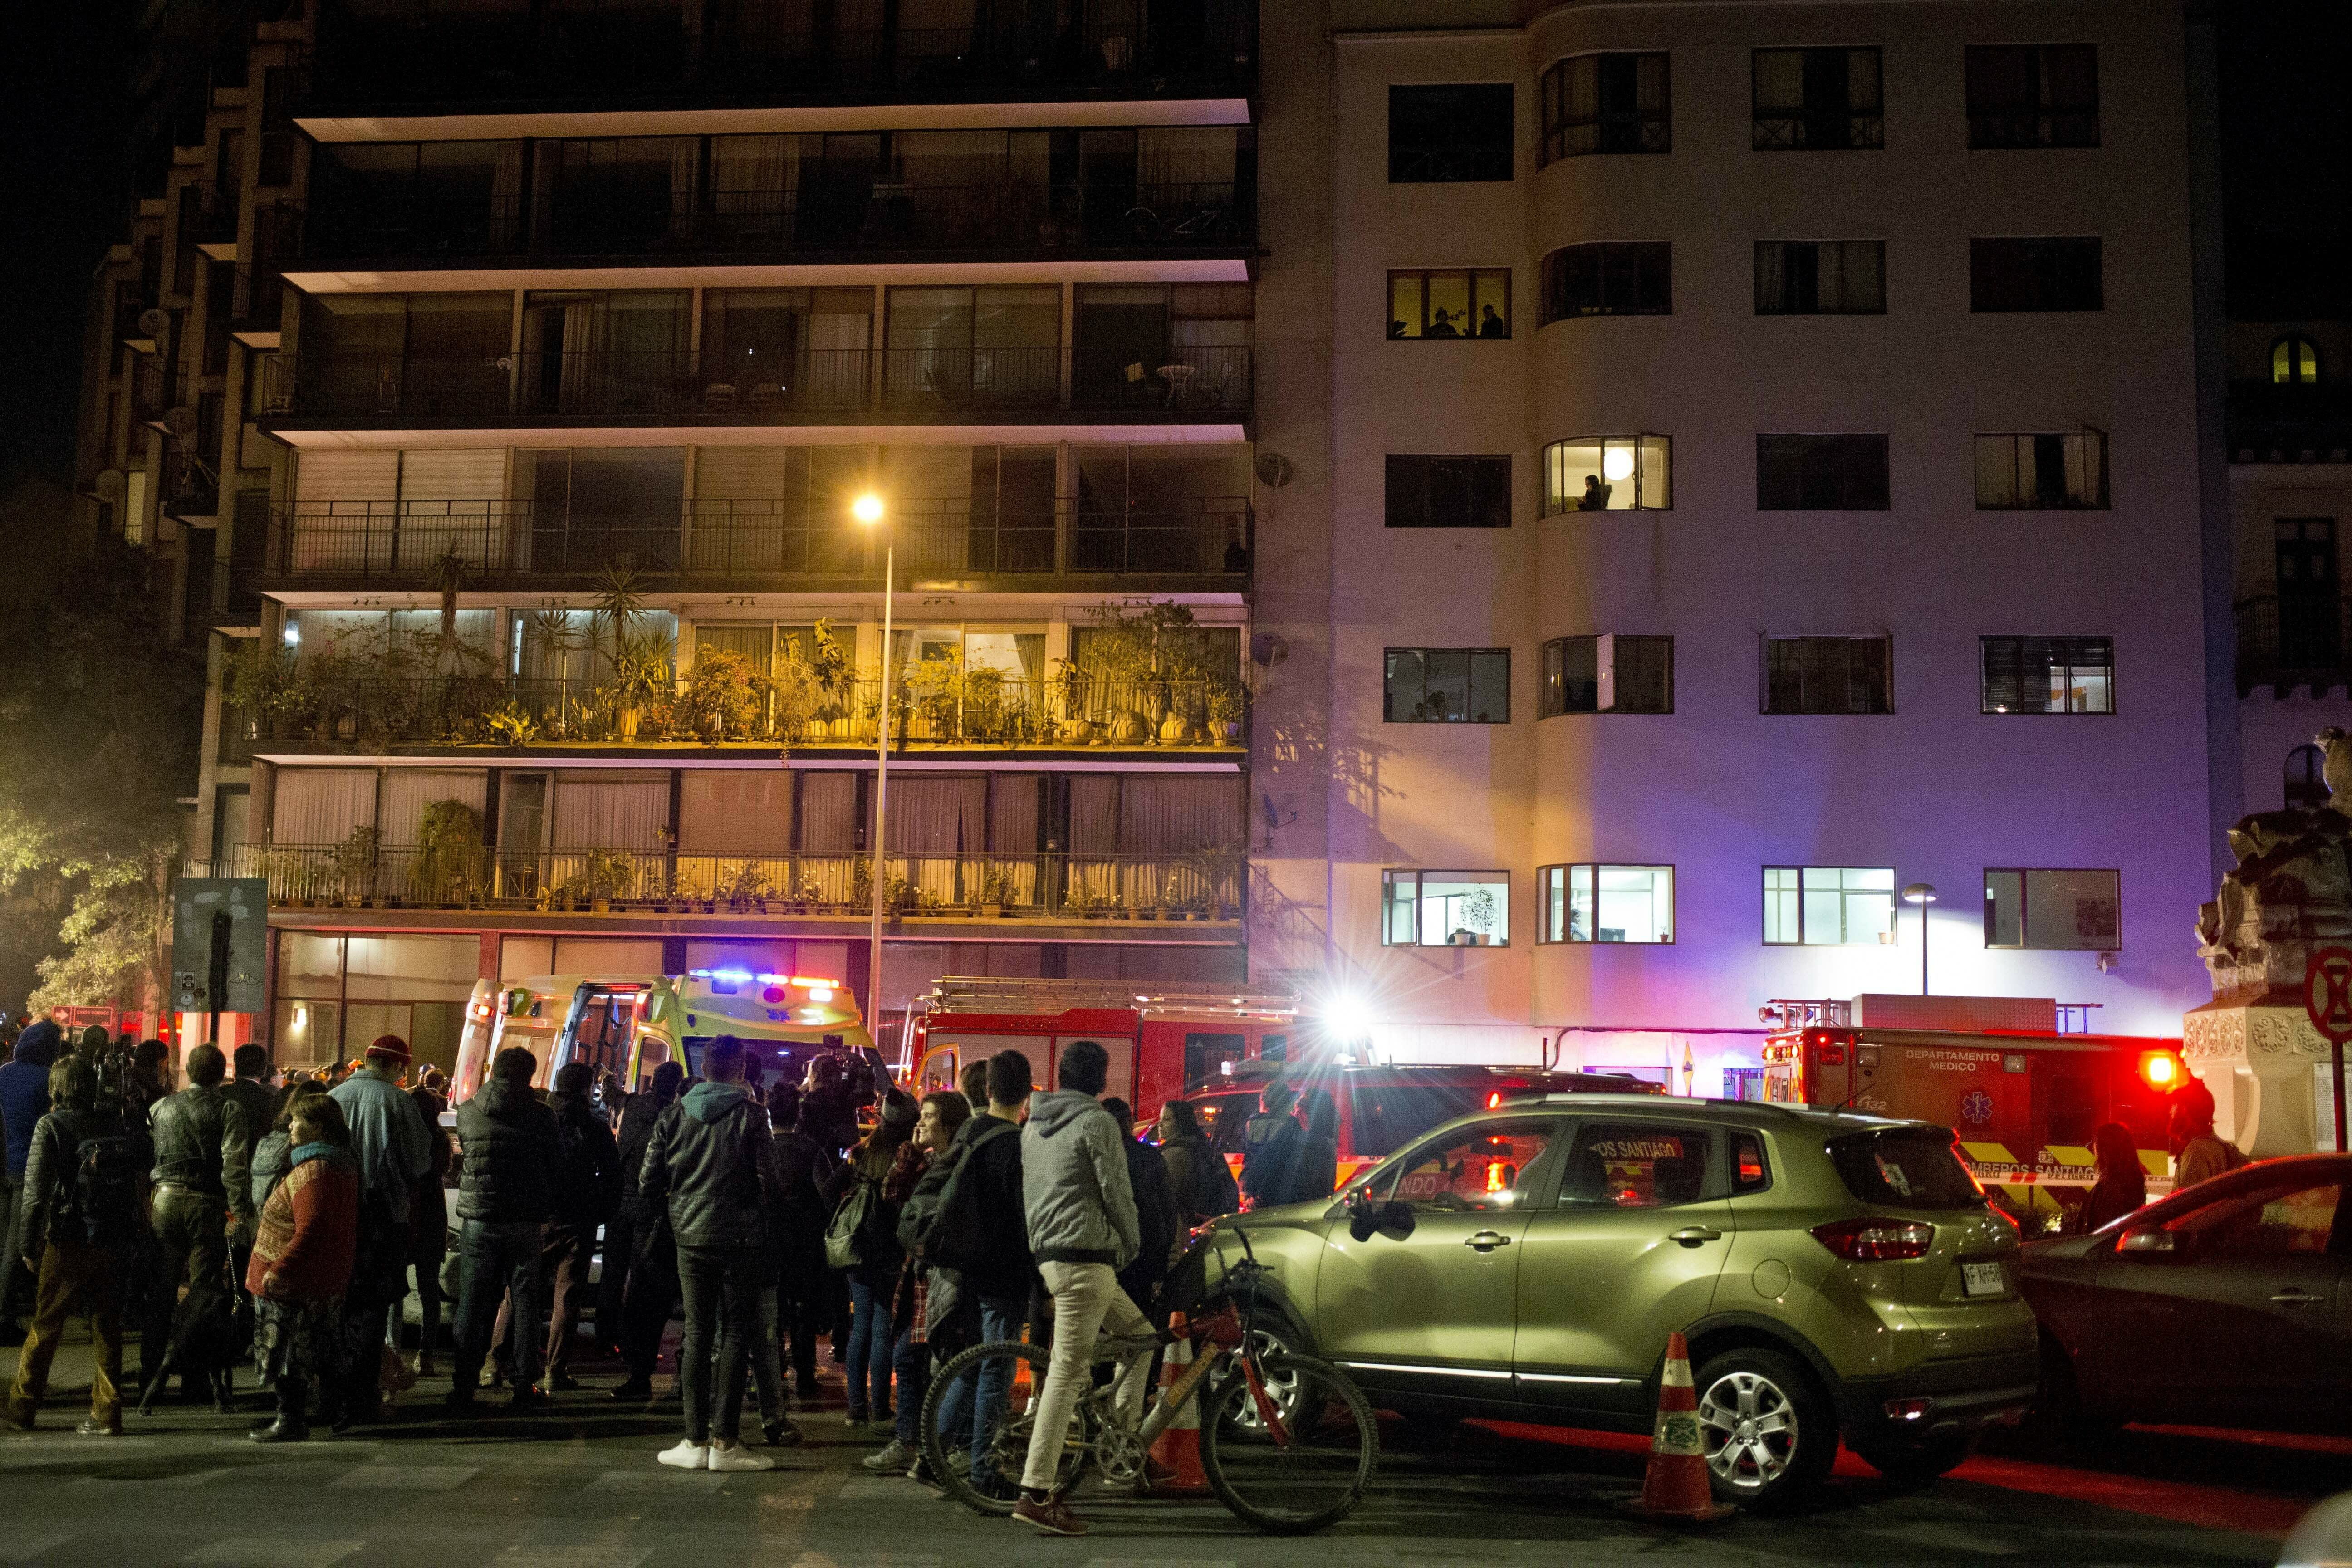 Onlookers look at the building where six Brazilians died in an apartment of apparent carbon monoxide poisoning in Santiago, Chile, Wednesday, May 22, 2019. Police commander Rodrigo Soto said officers found four adults and two children dead at the six-story building. The fire department said a high concentration of carbon monoxide was measured in the apartment, which it said was completely closed. (AP Photo/Esteban Felix)